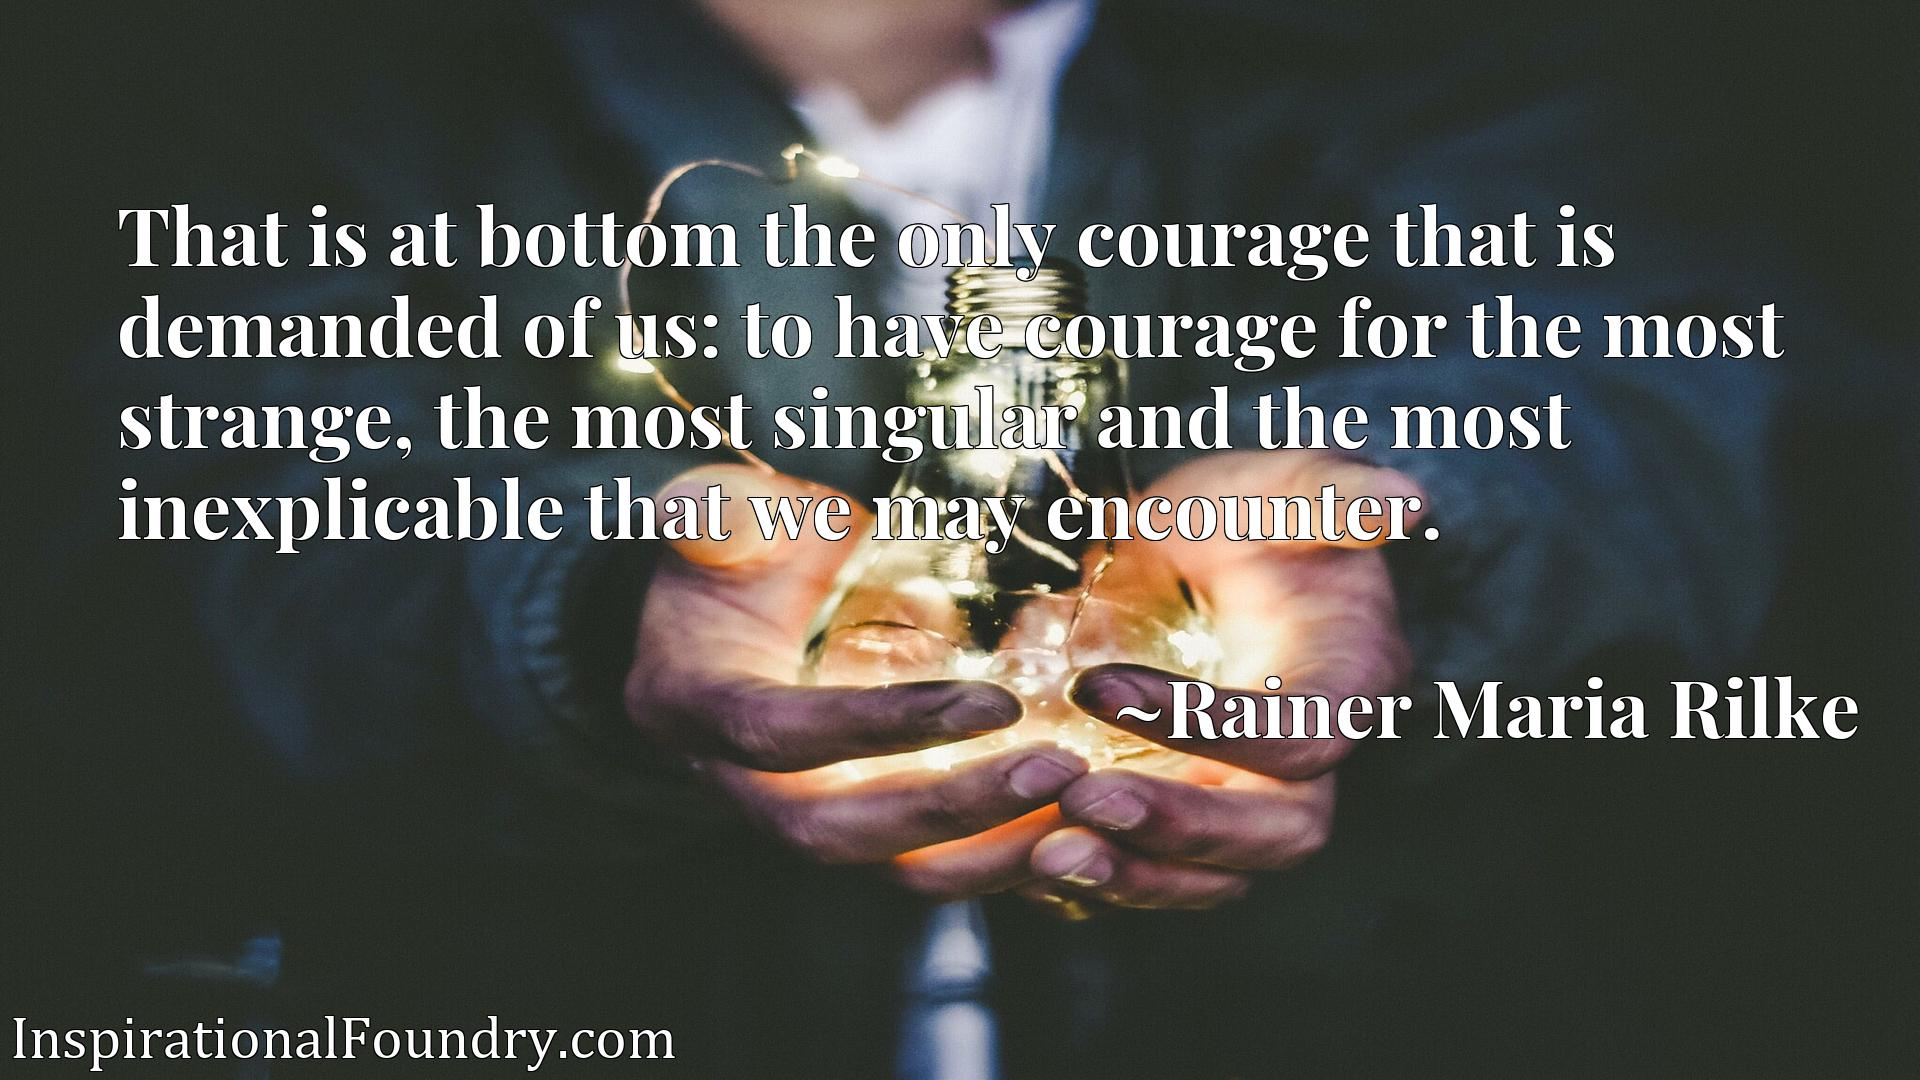 That is at bottom the only courage that is demanded of us: to have courage for the most strange, the most singular and the most inexplicable that we may encounter.